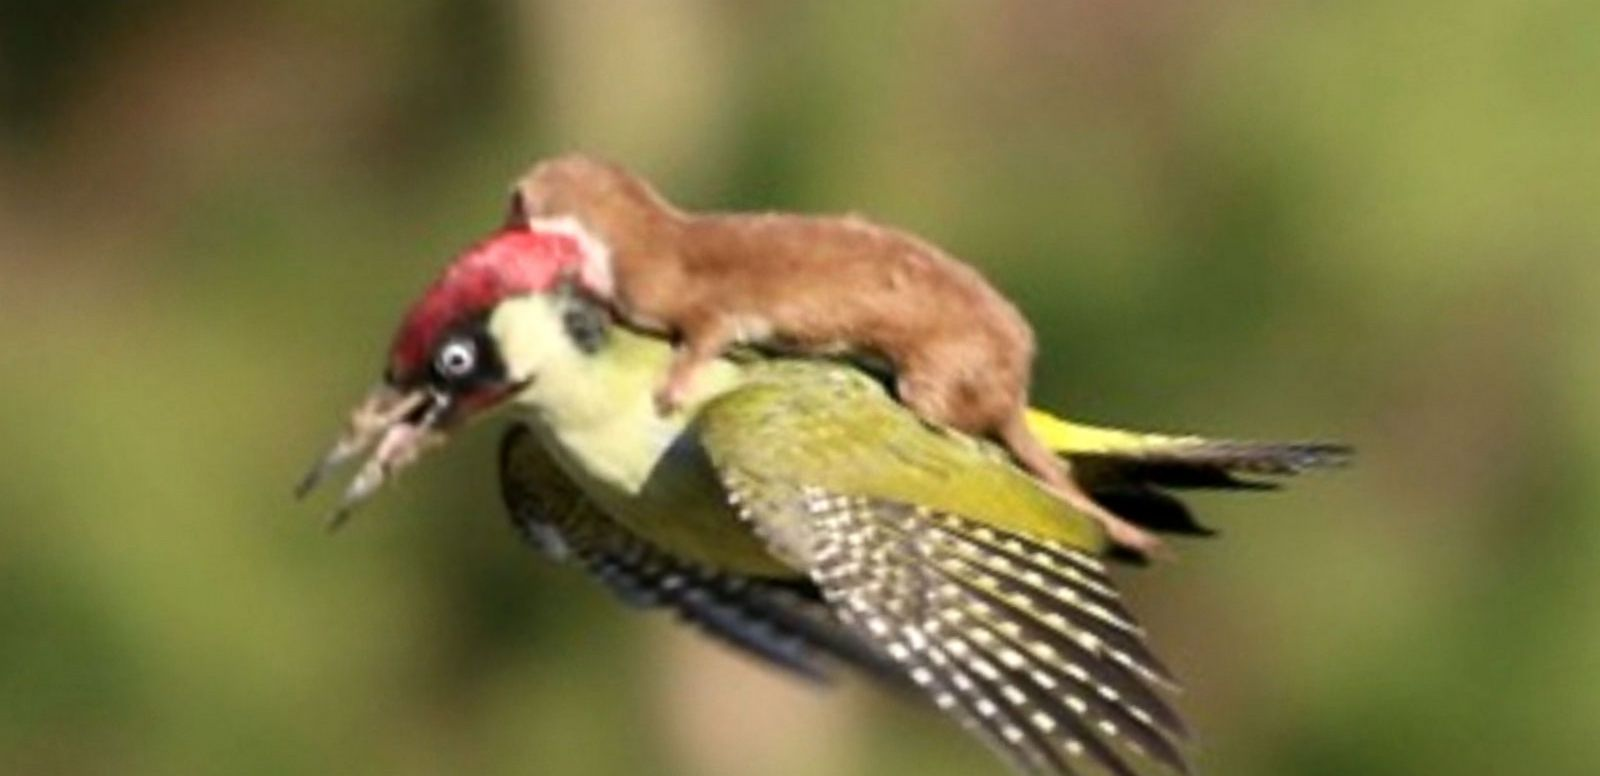 VIDEO: Woodpecker Rides With Weasel on Its Back